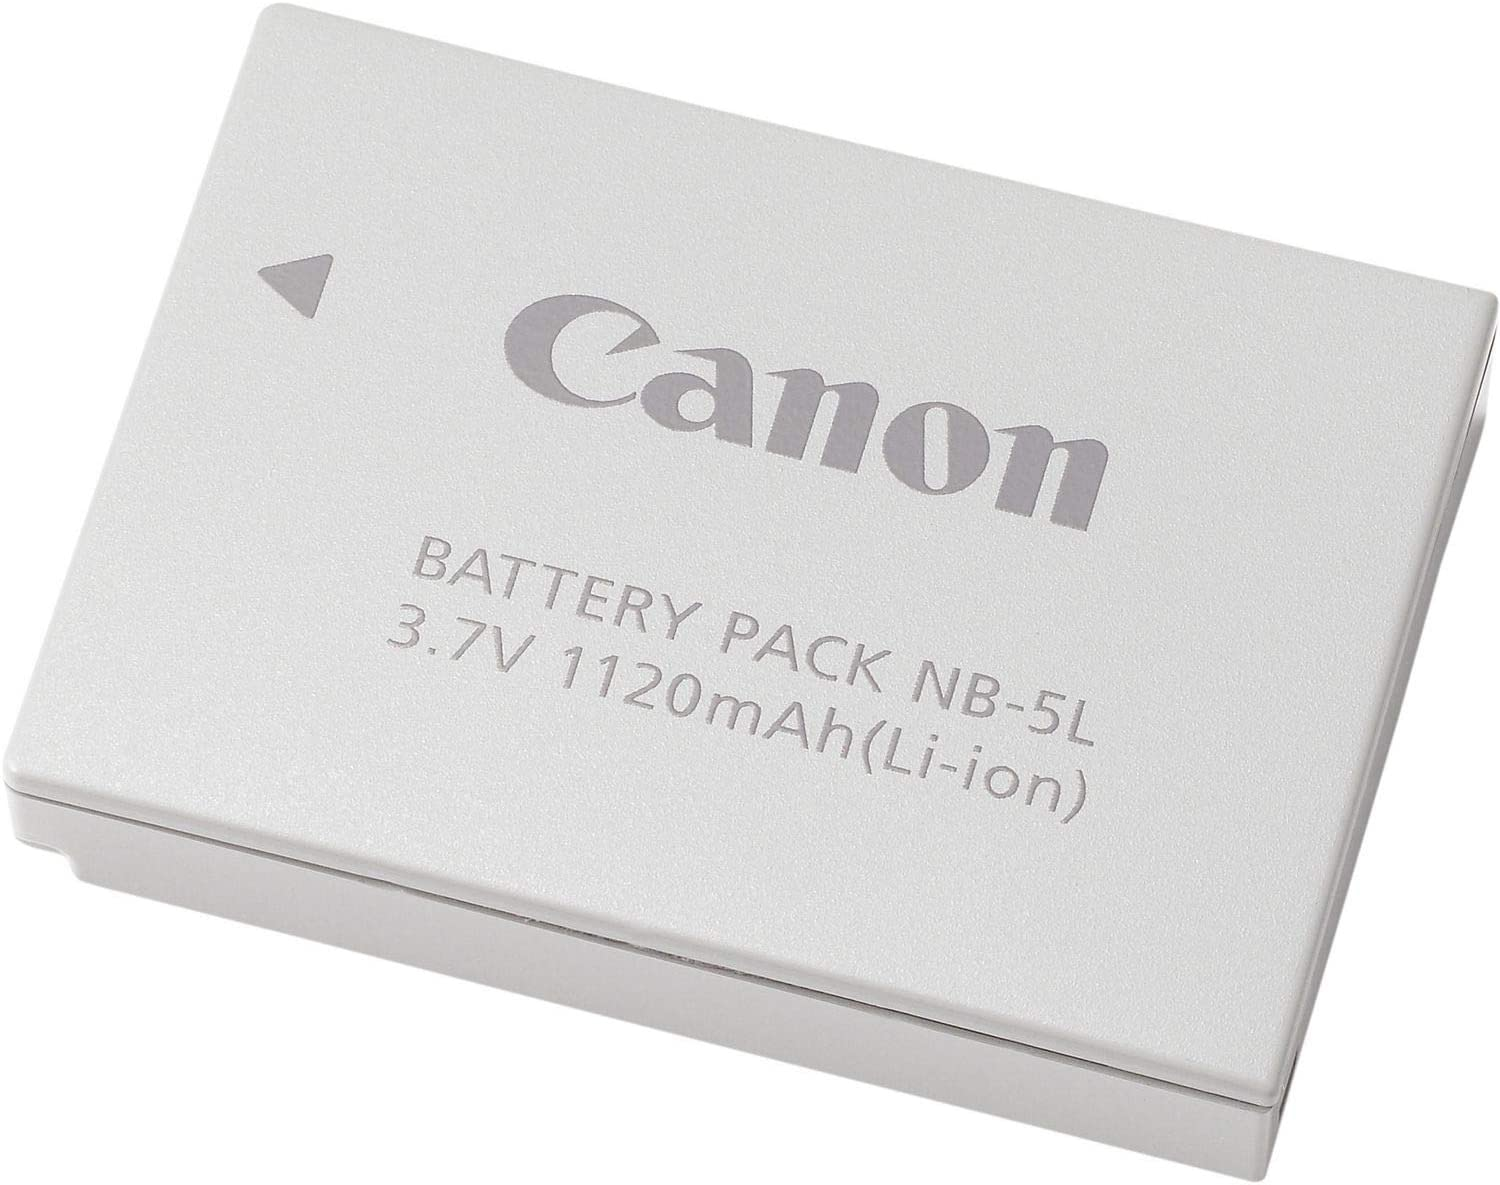 Canon Cameras Ranking TOP5 NB-5L Pack Battery All items in the store 1135B001